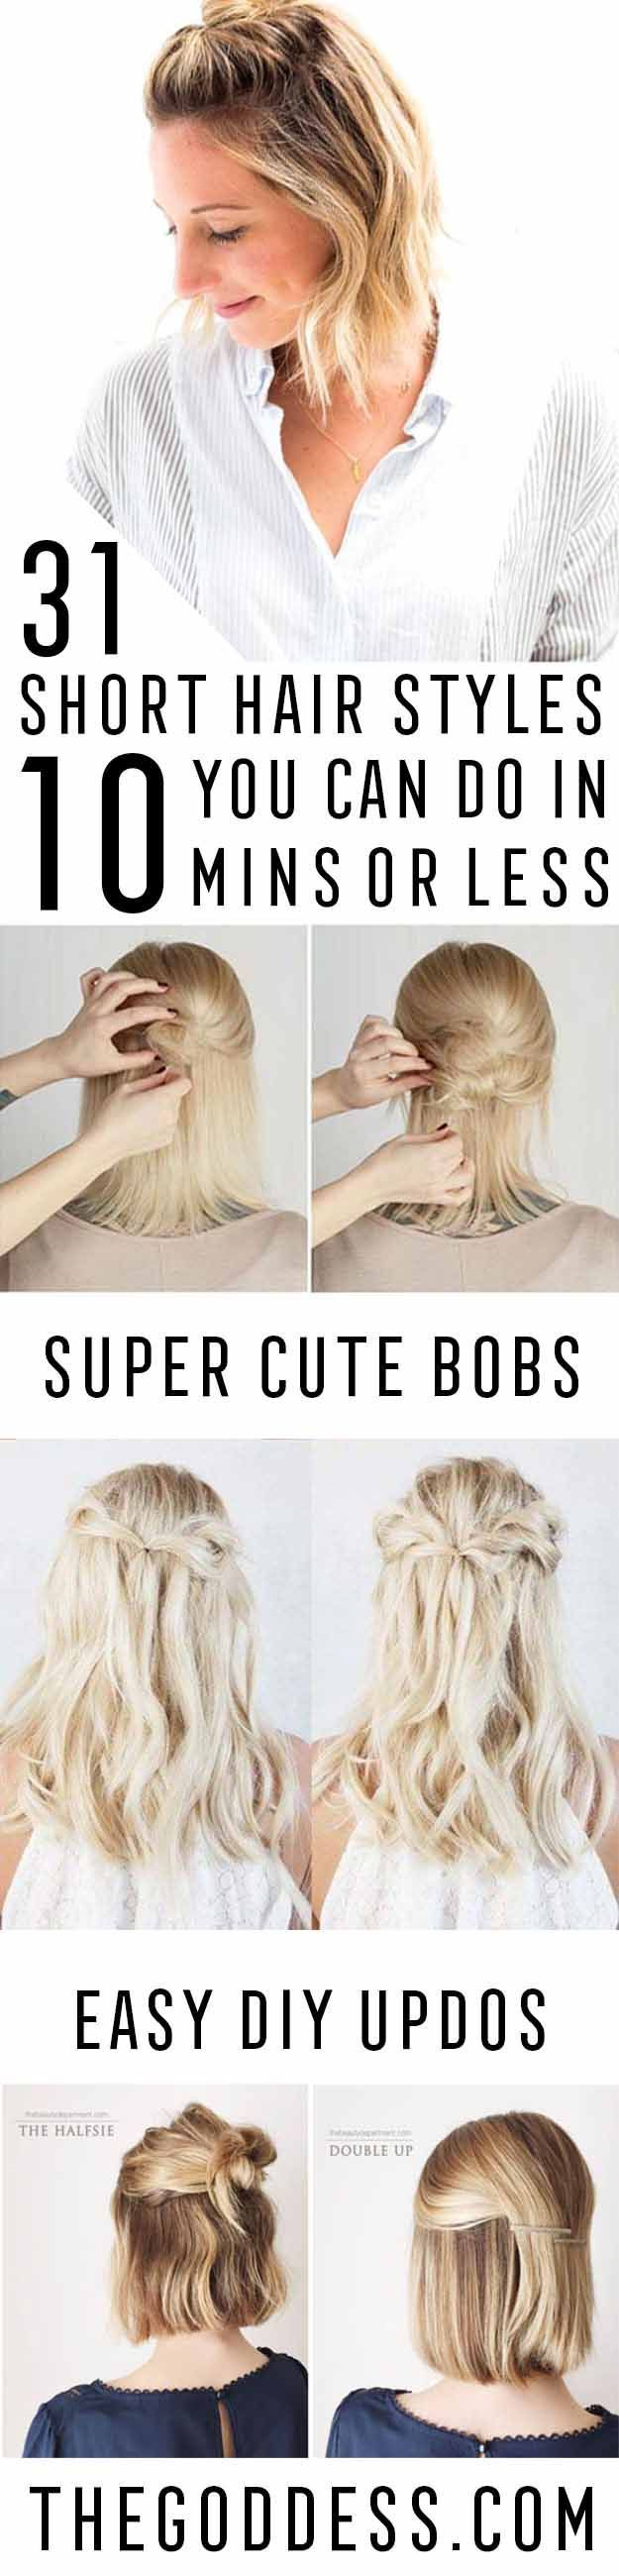 Short Hair Styles You Can Do In 10 Minutes or Less - Easy Step By Step Tutorials...